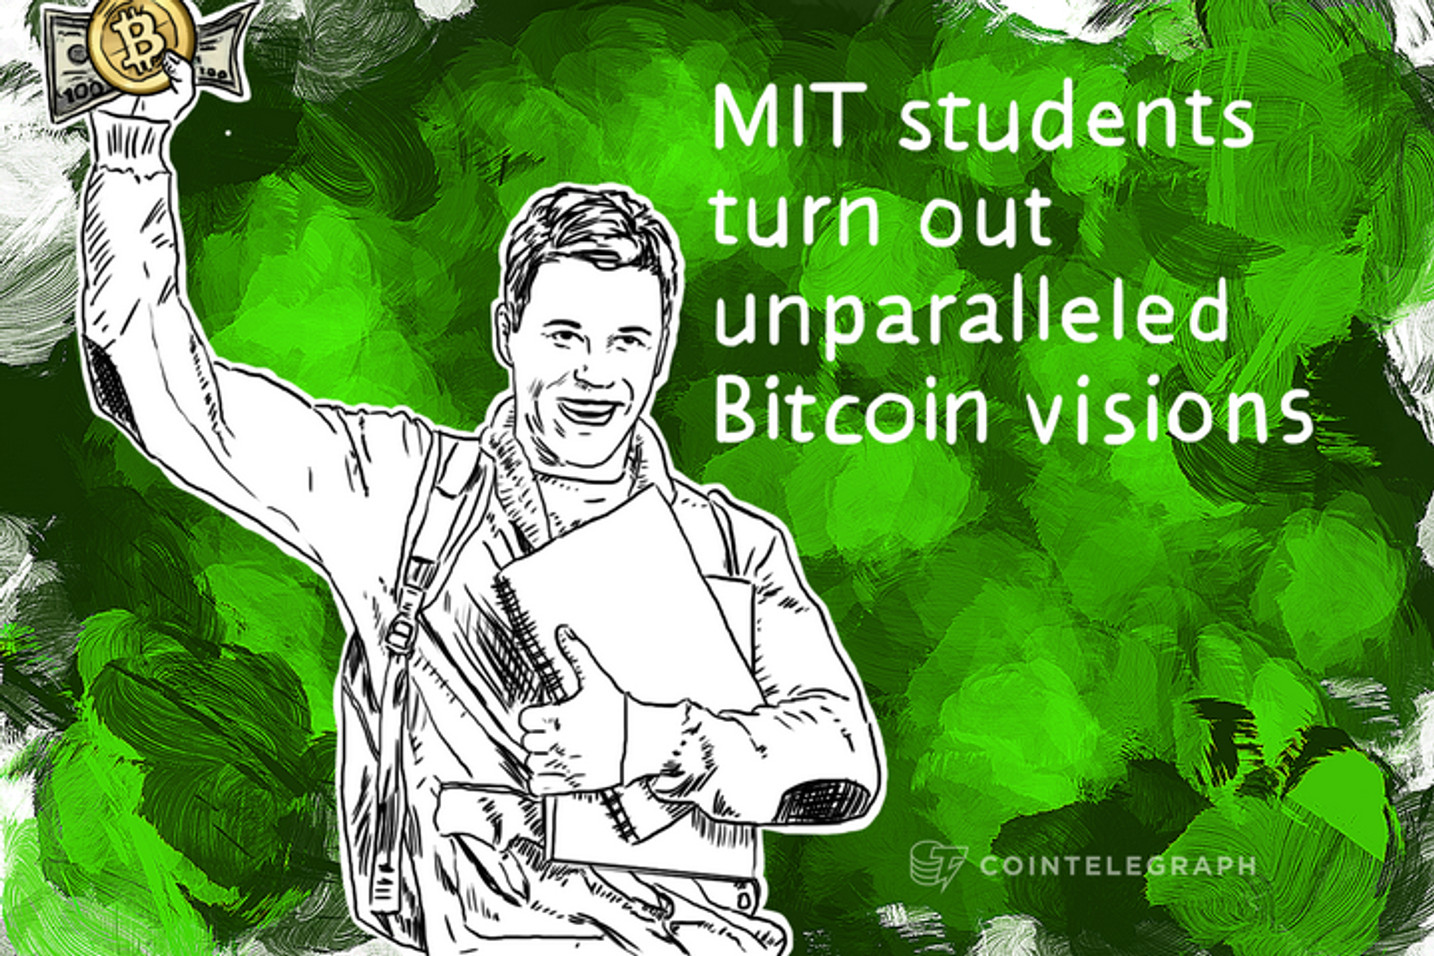 MIT students turn out unparalleled Bitcoin visions